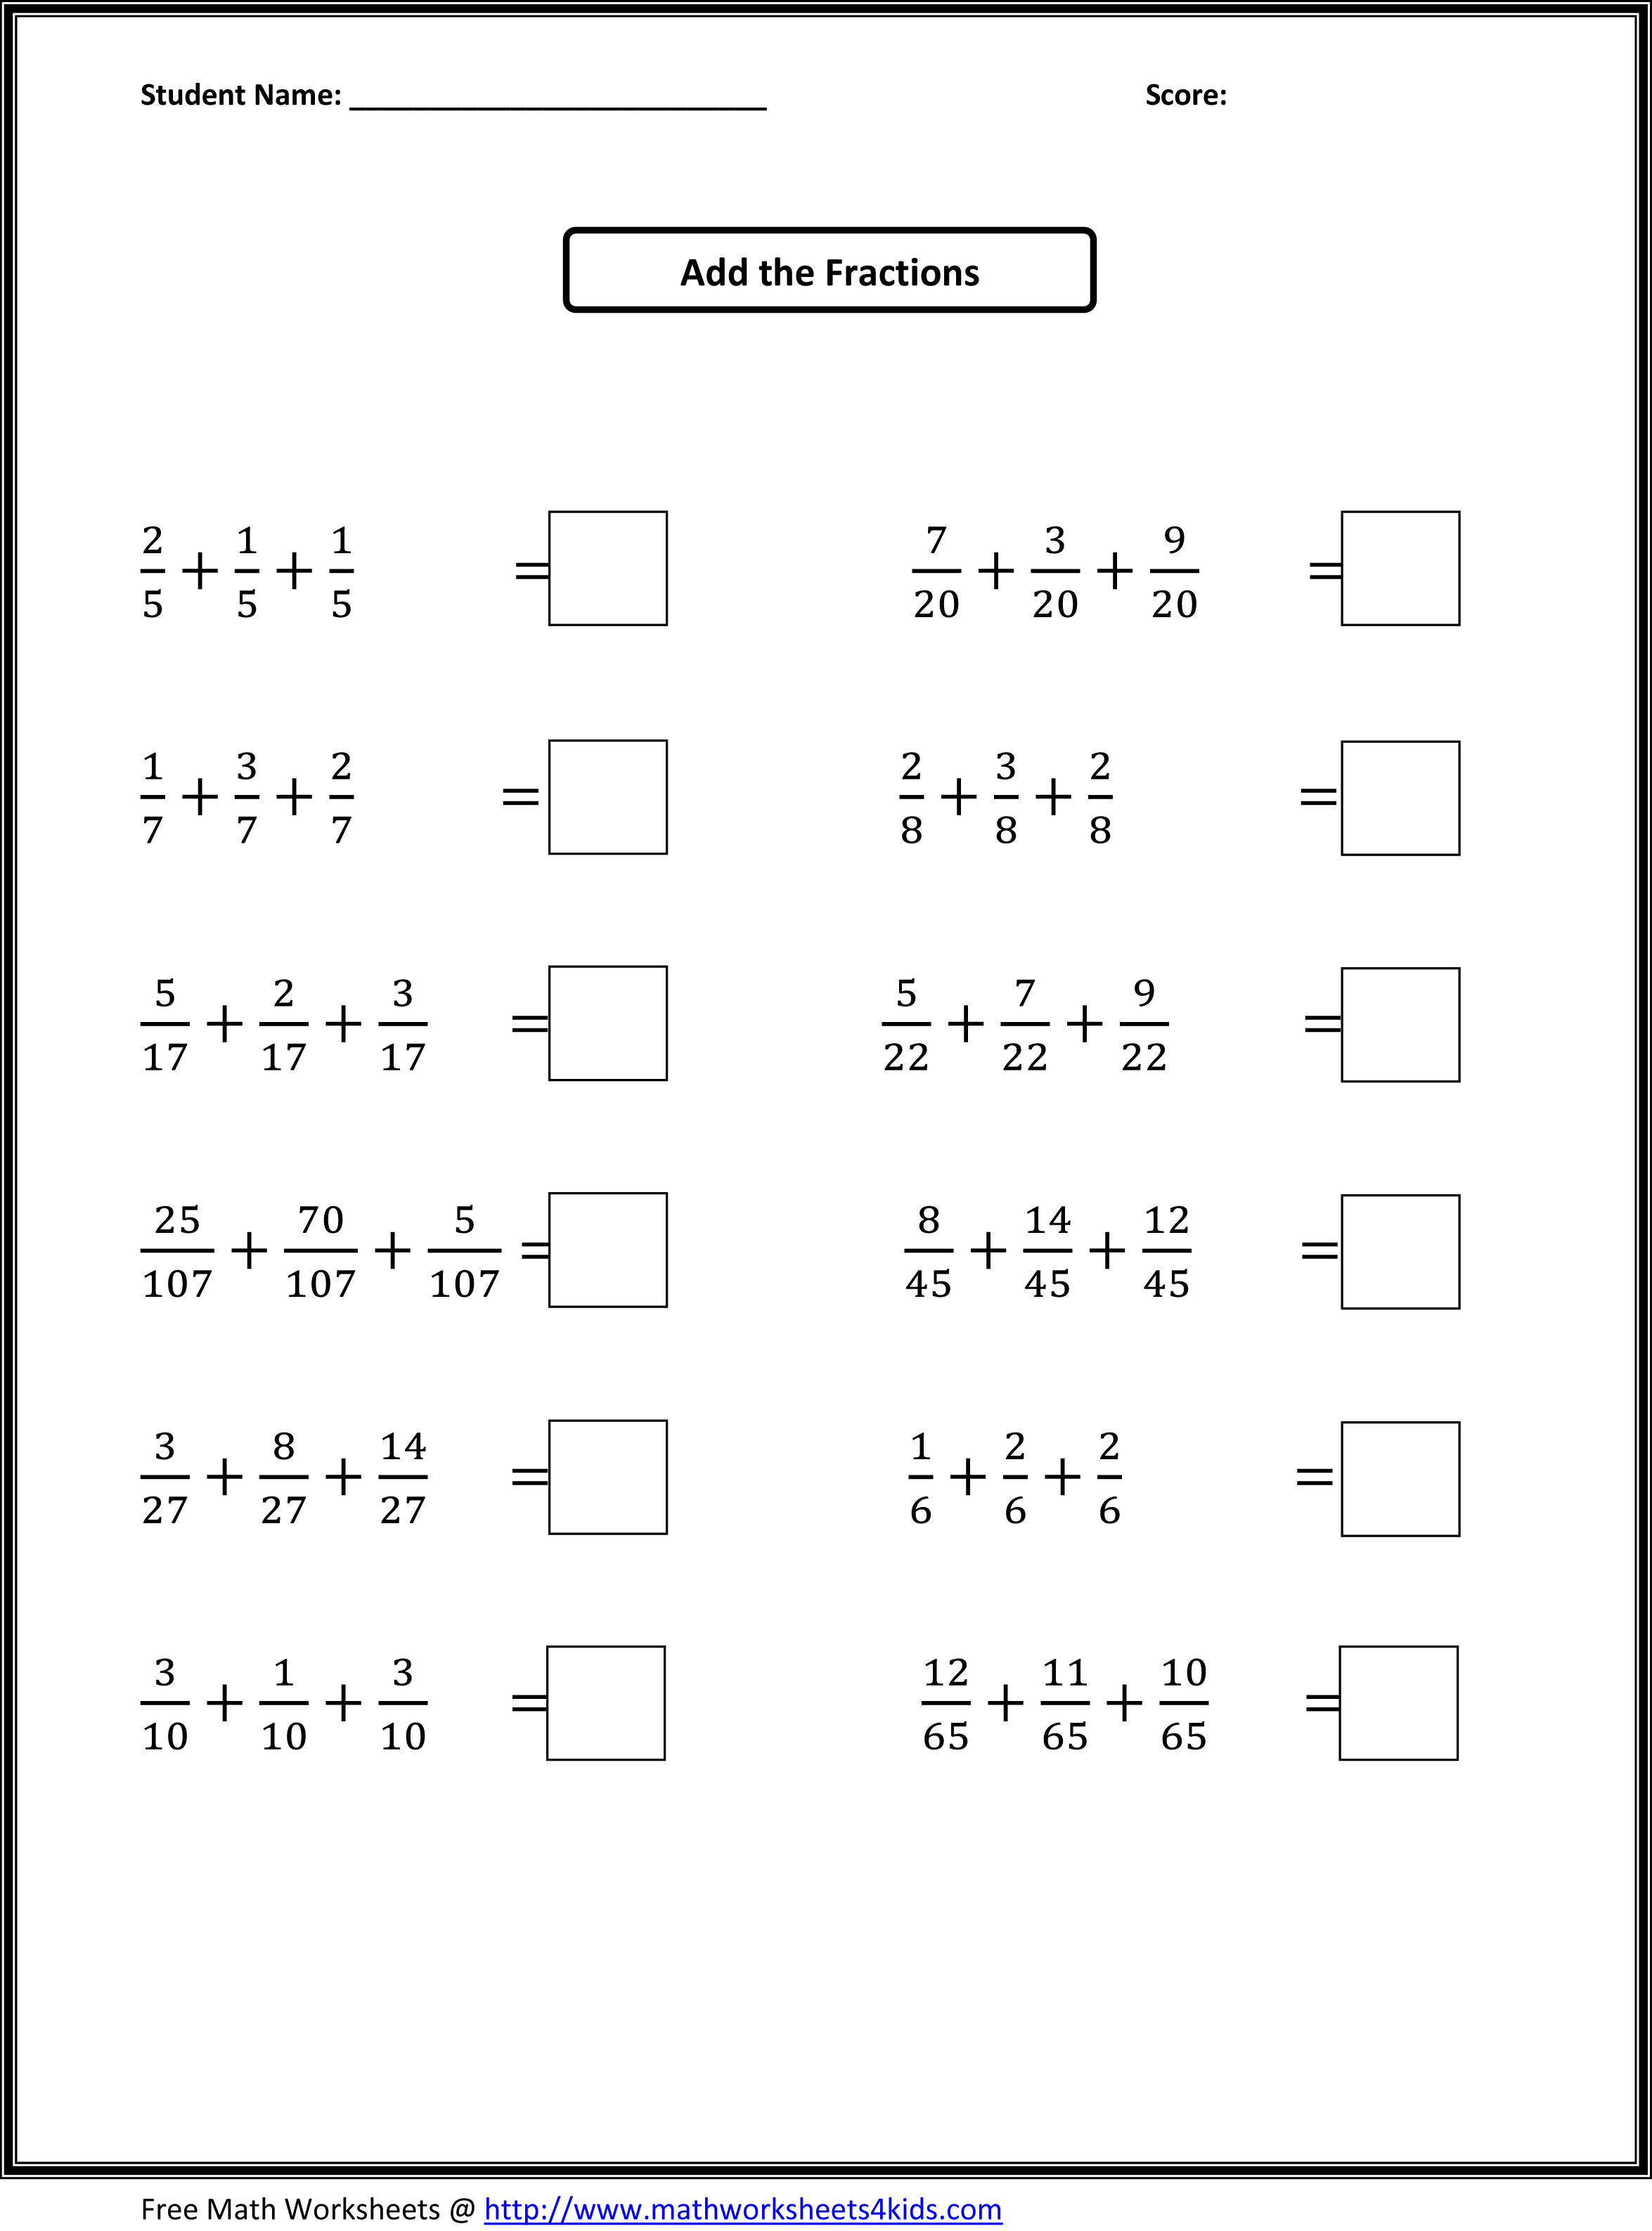 math worksheet : fraction worksheets 4th grade  kids activities : Comparing And Ordering Fractions Worksheets 5th Grade